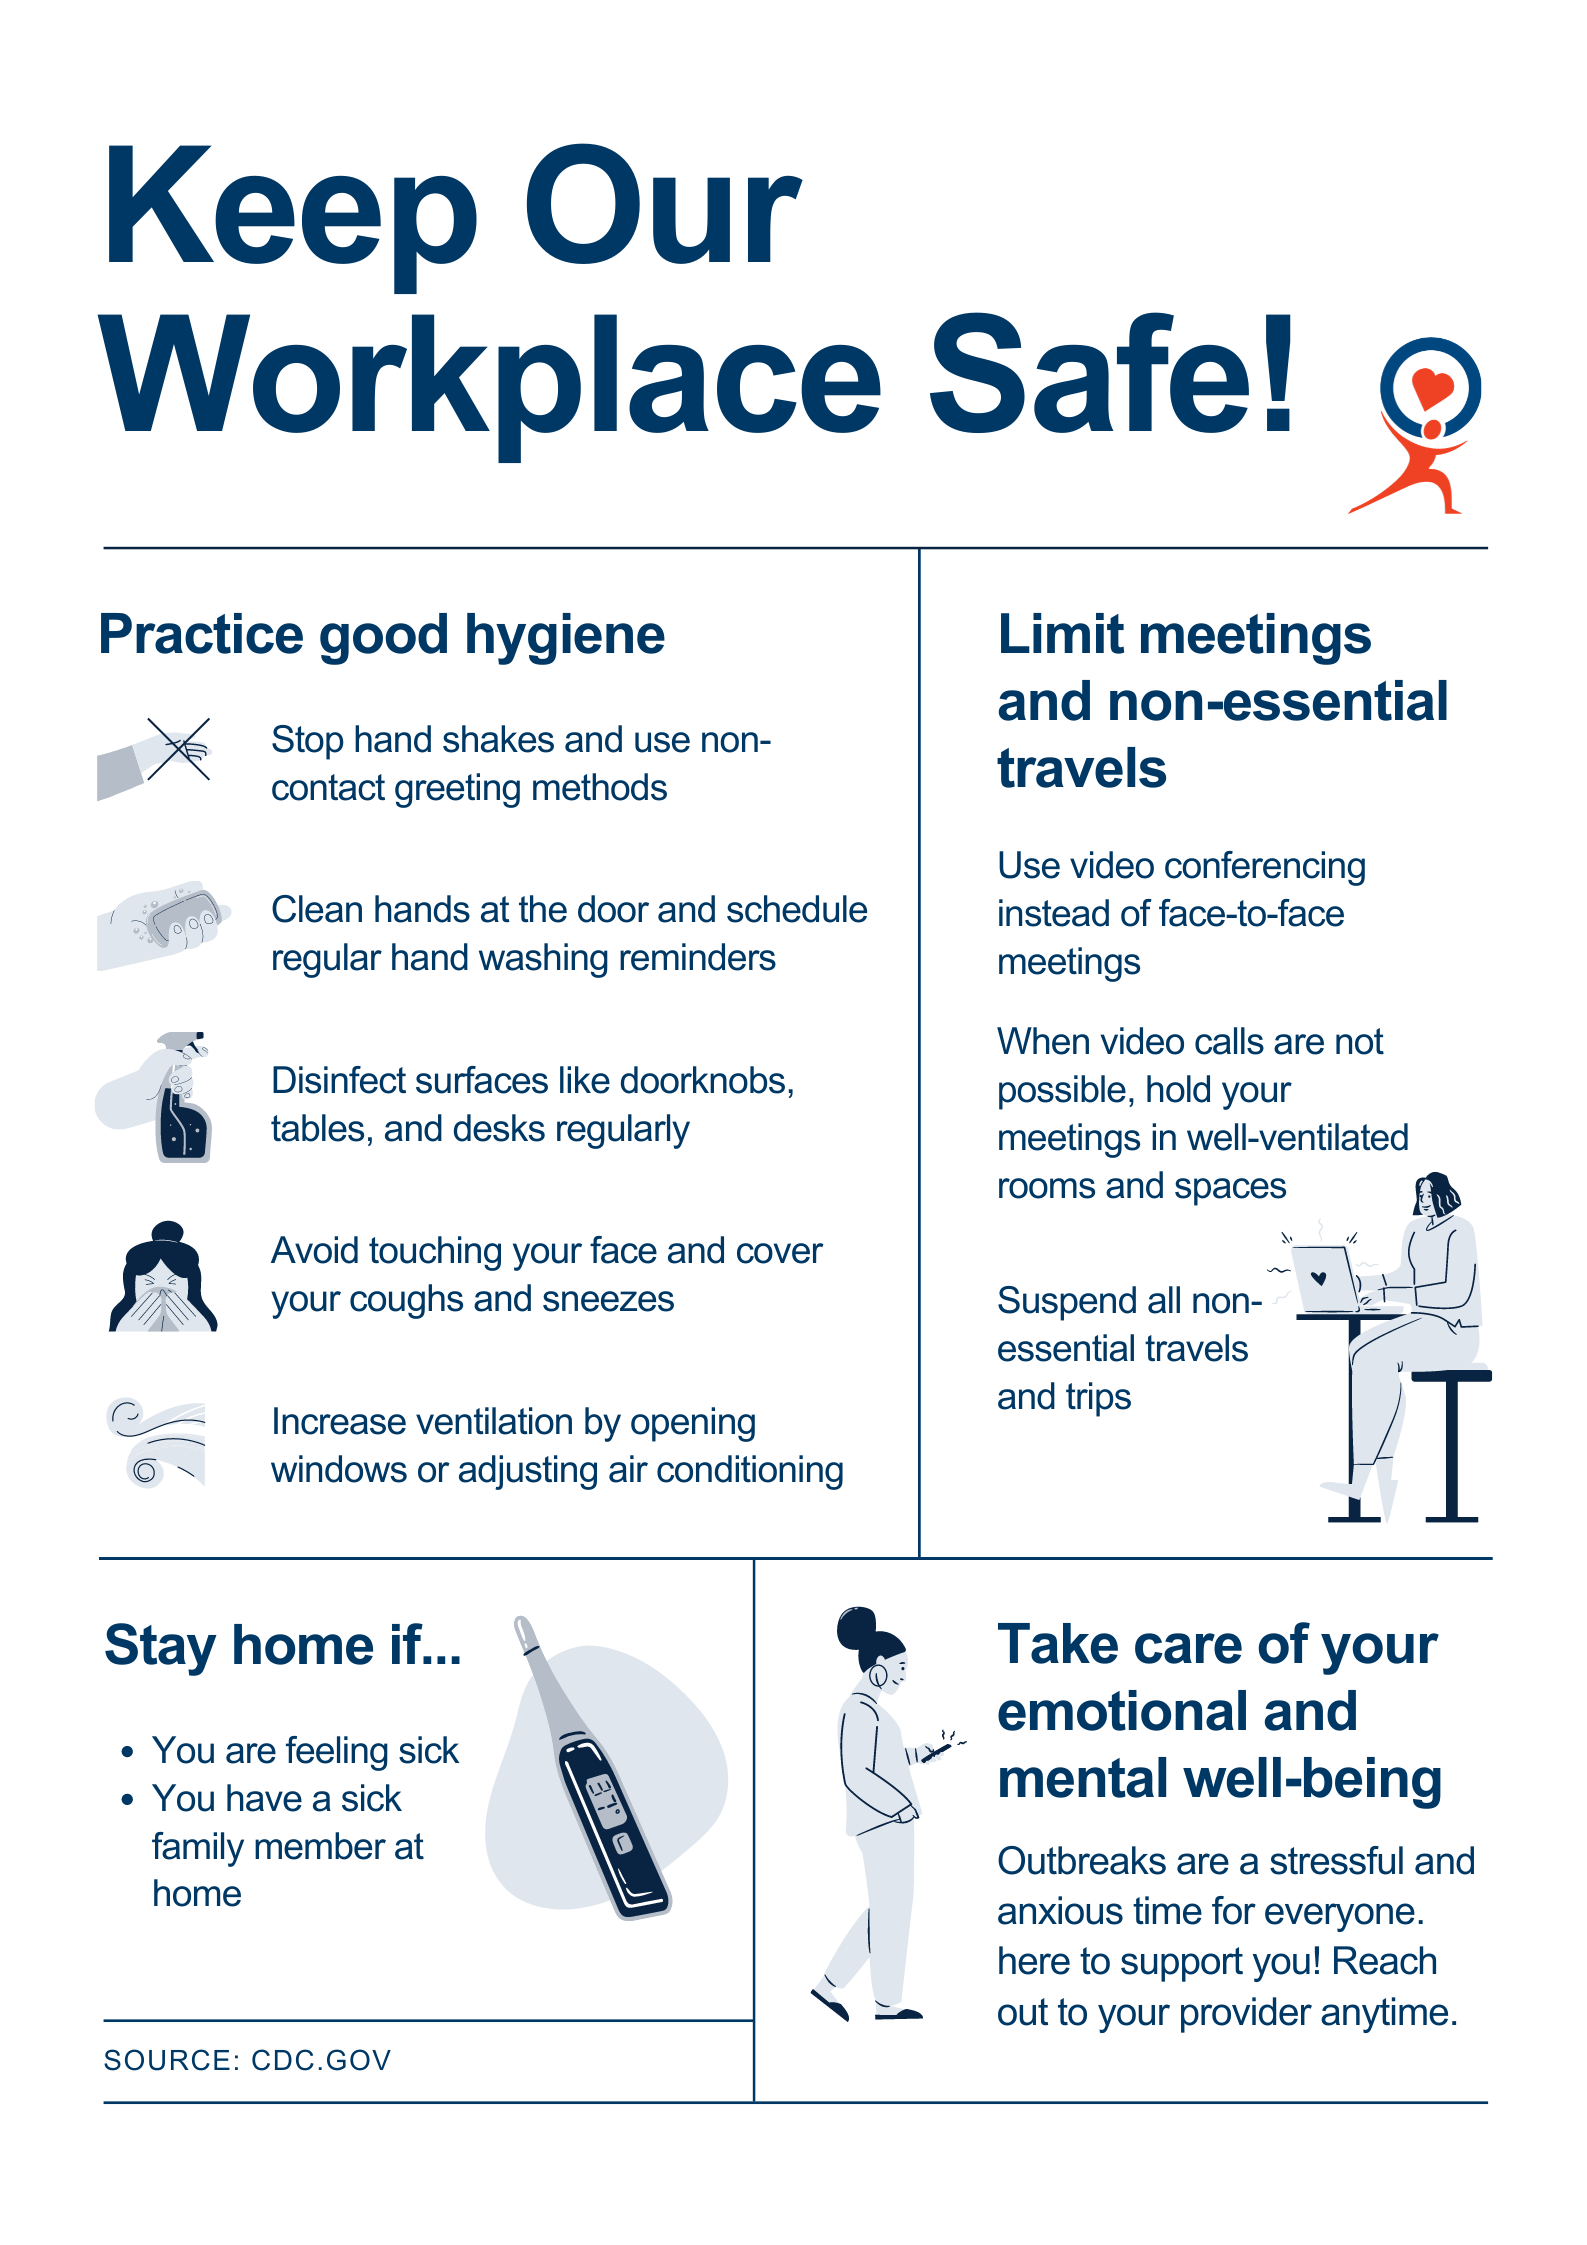 Keep Our Workplace Safe!